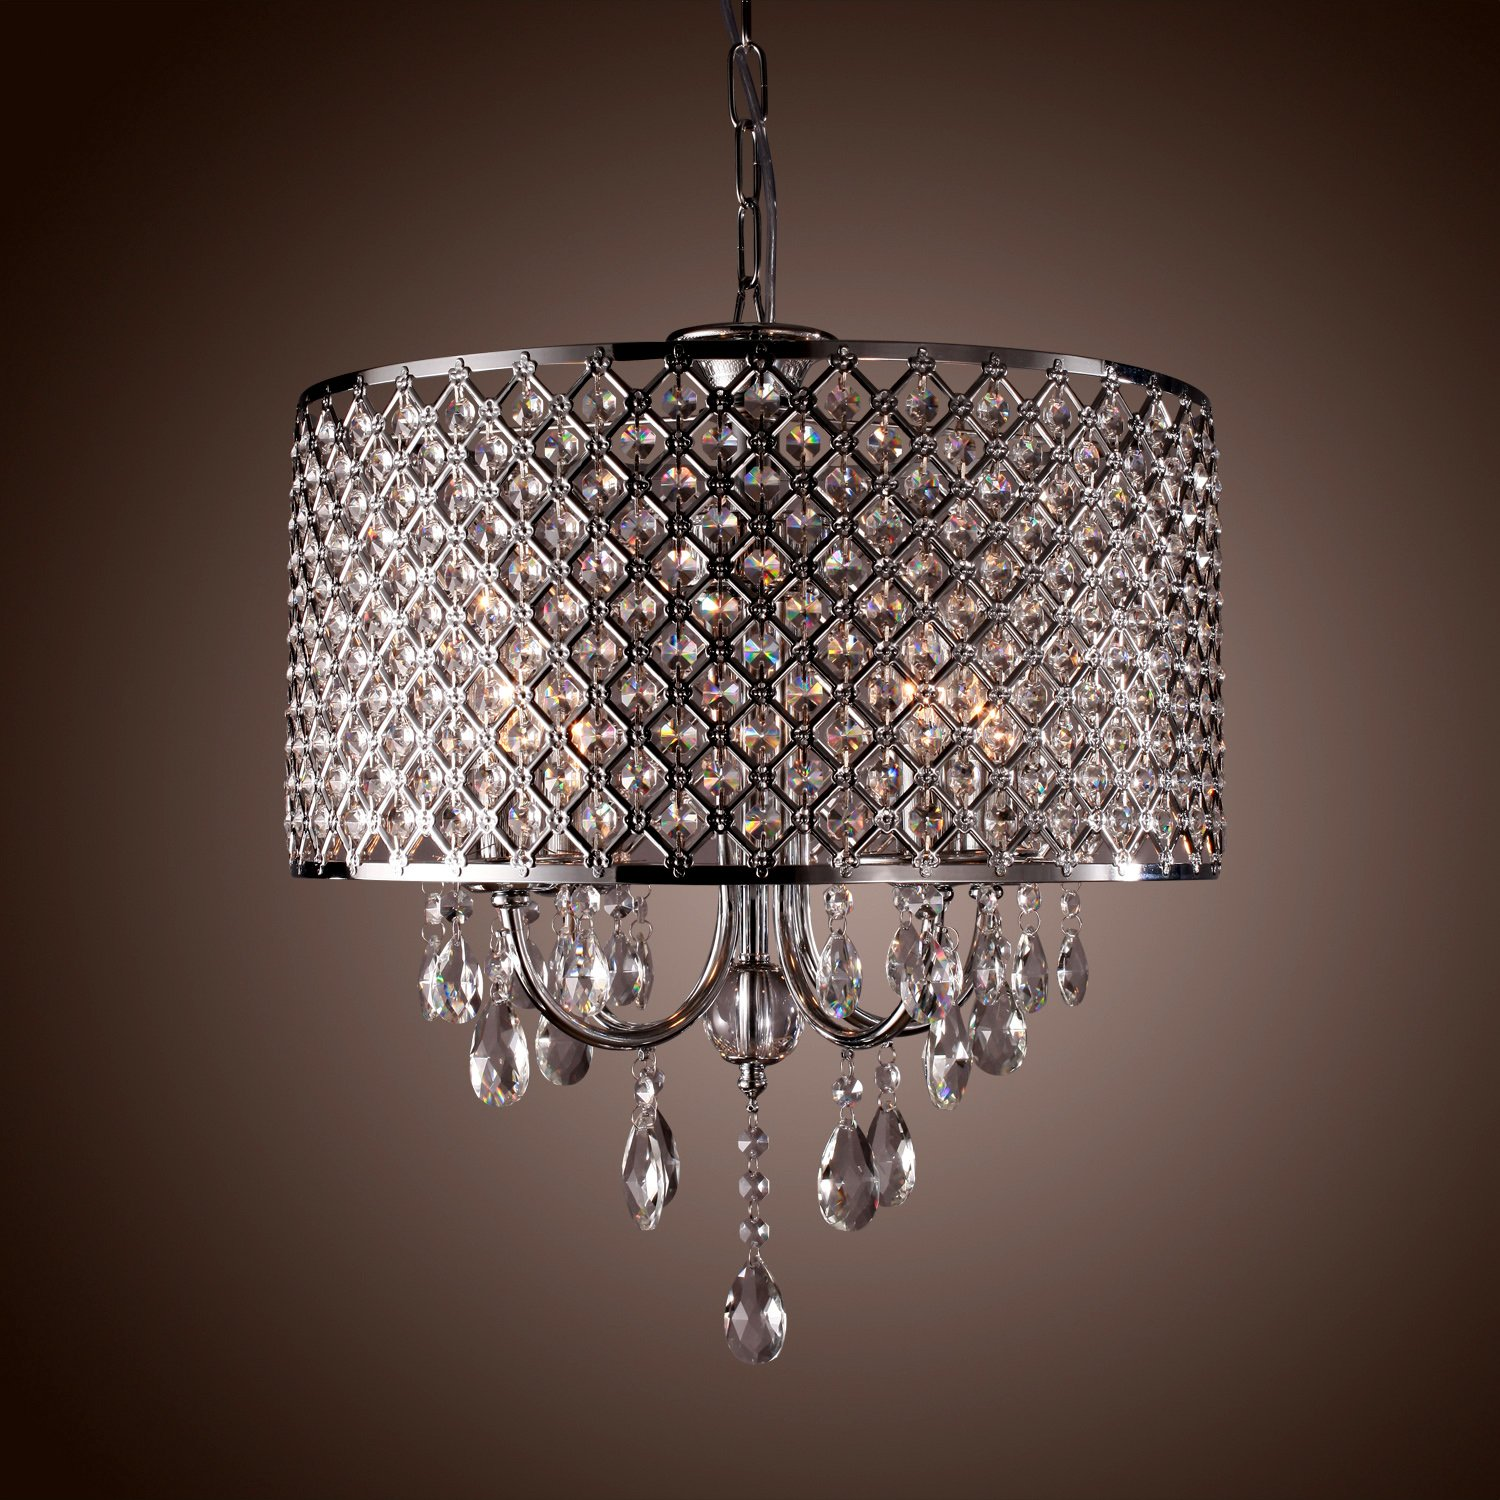 4 light round hanging crystal chandelier pendant ceiling fixture chrome finish